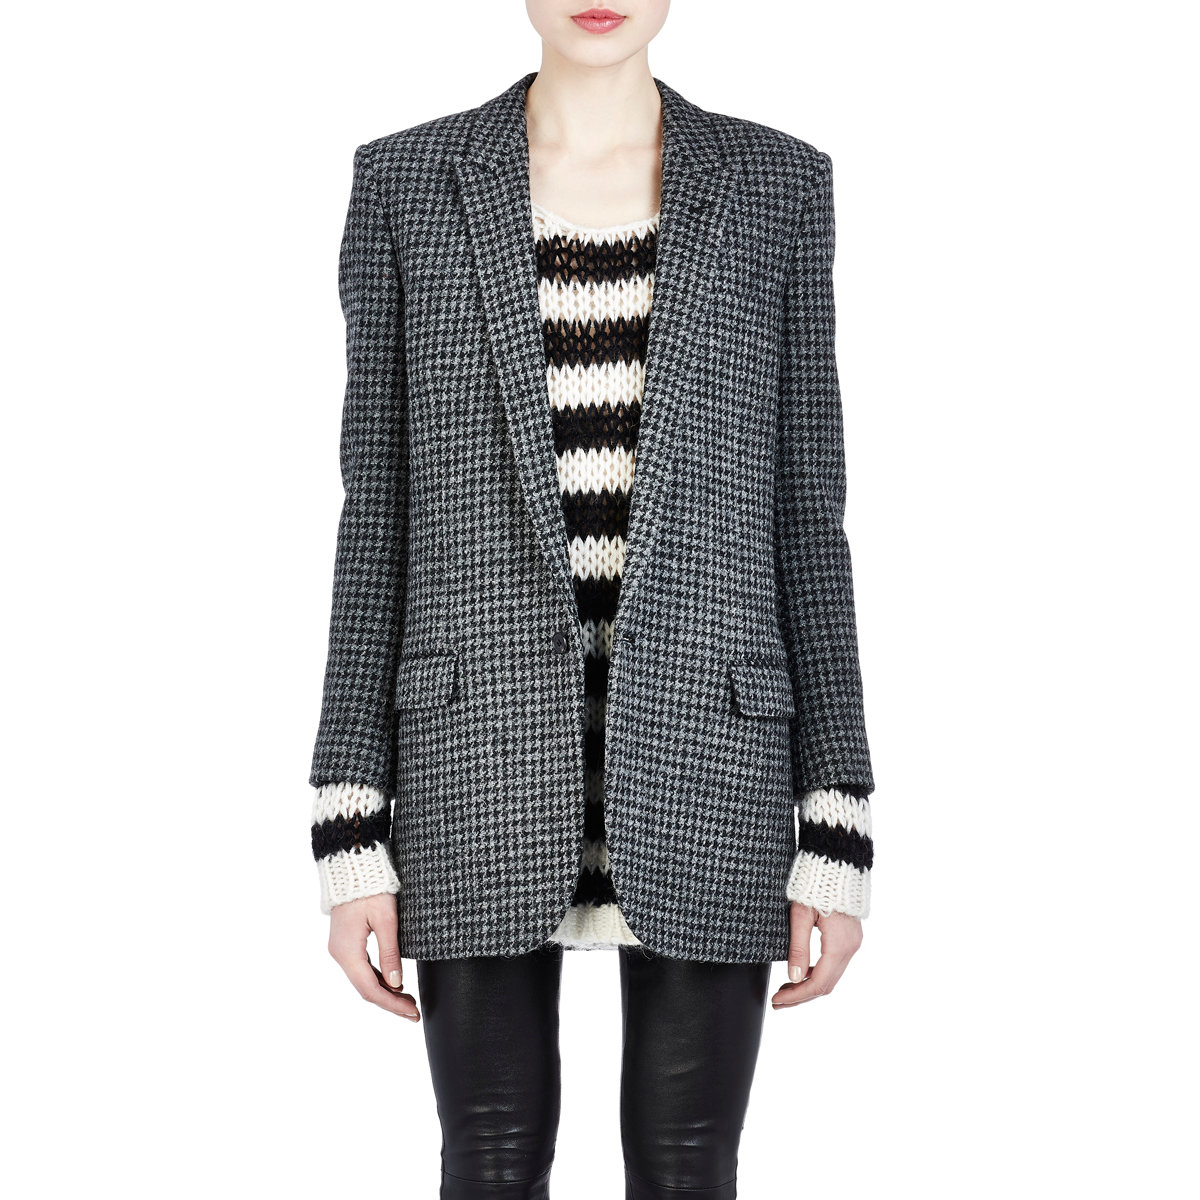 Saint laurent Houndstooth Tweed Single-button Jacket in Gray | Lyst